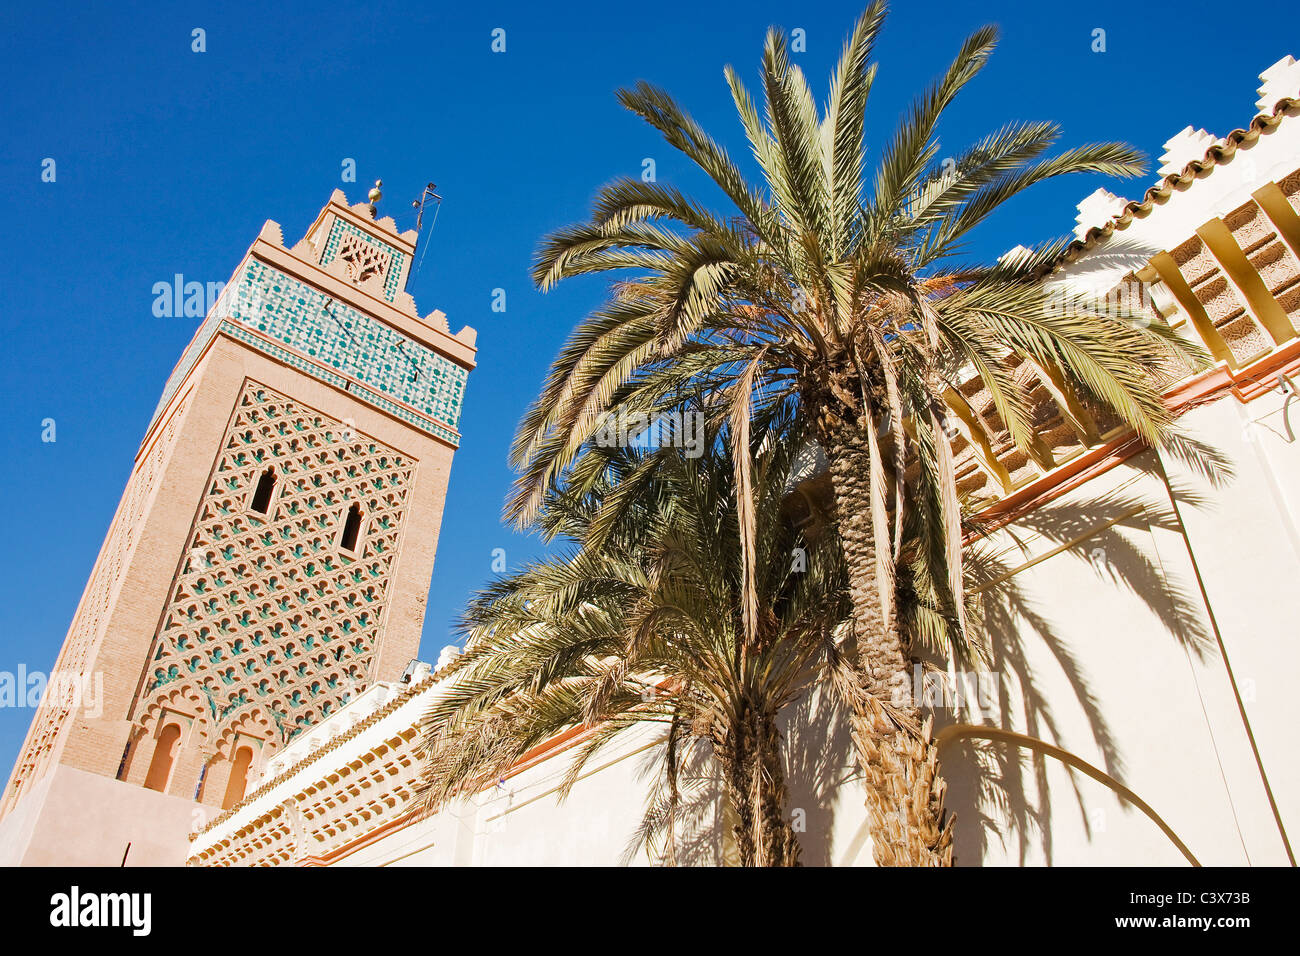 The minaret of the Kasbah Mosque in the Medina (the original Arab part of a town) of Marrakesh, Morrocco. - Stock Image